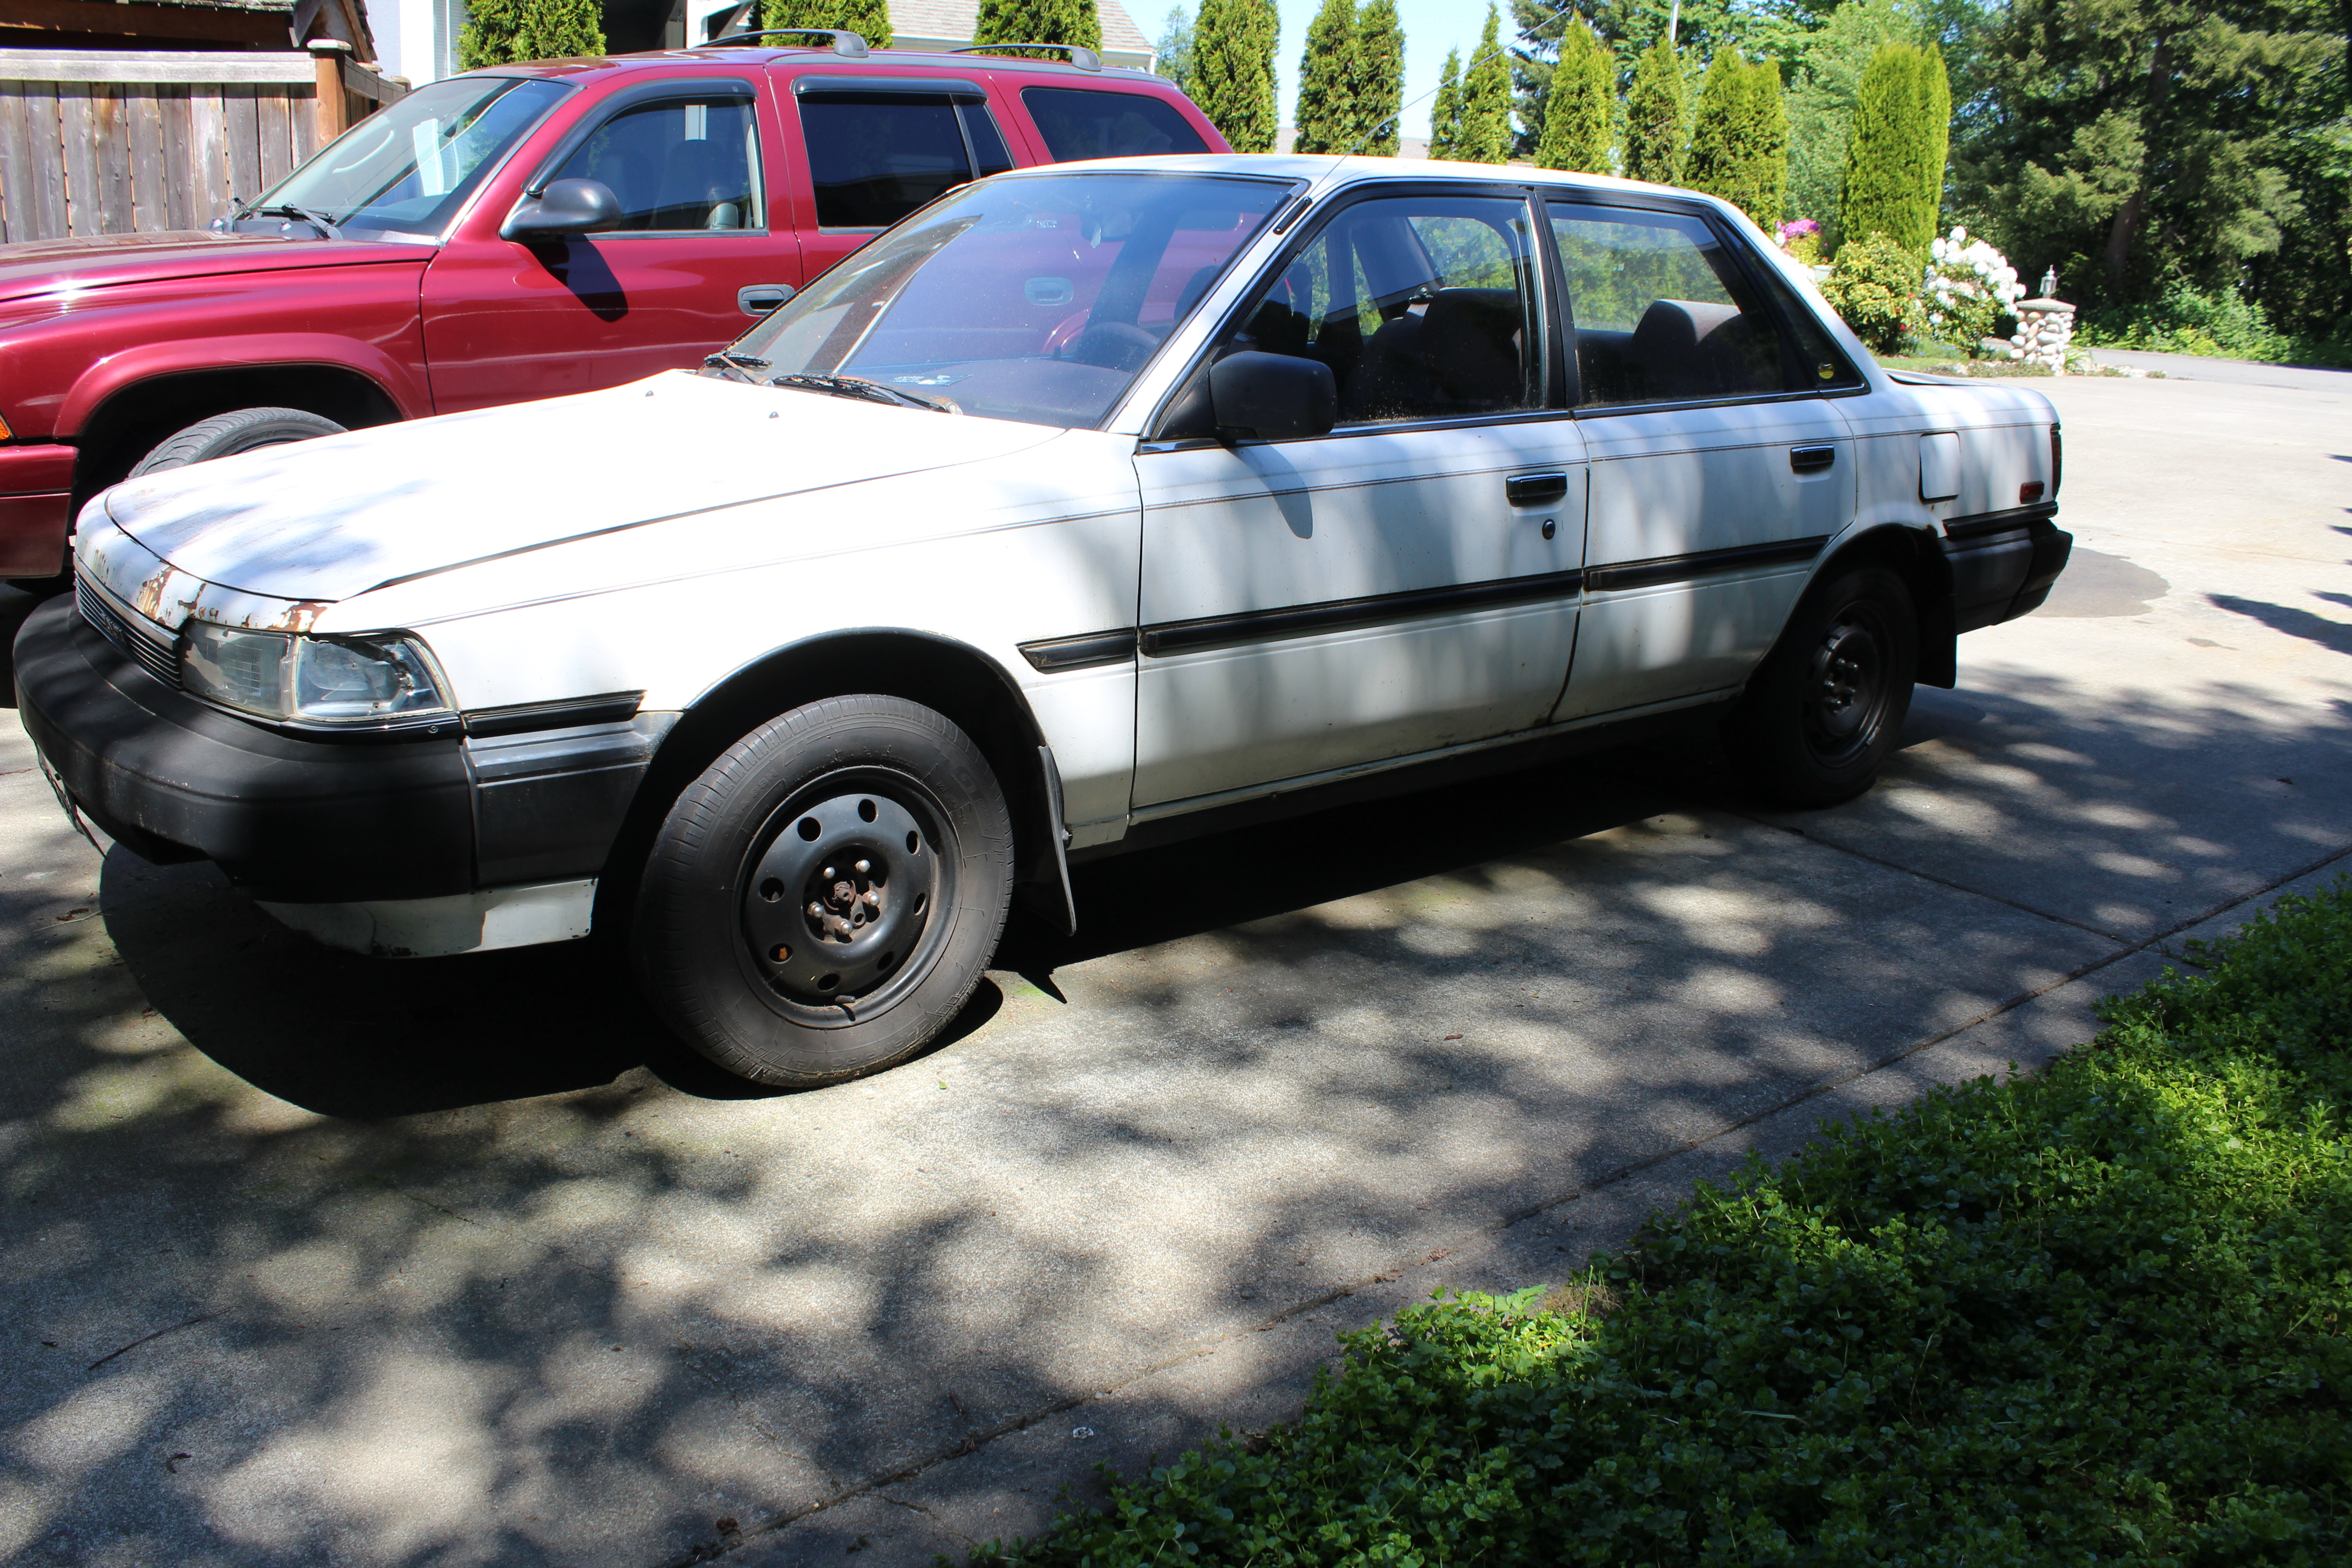 Cash for Cars Juneau, AK | Sell Your Junk Car | The Clunker Junker